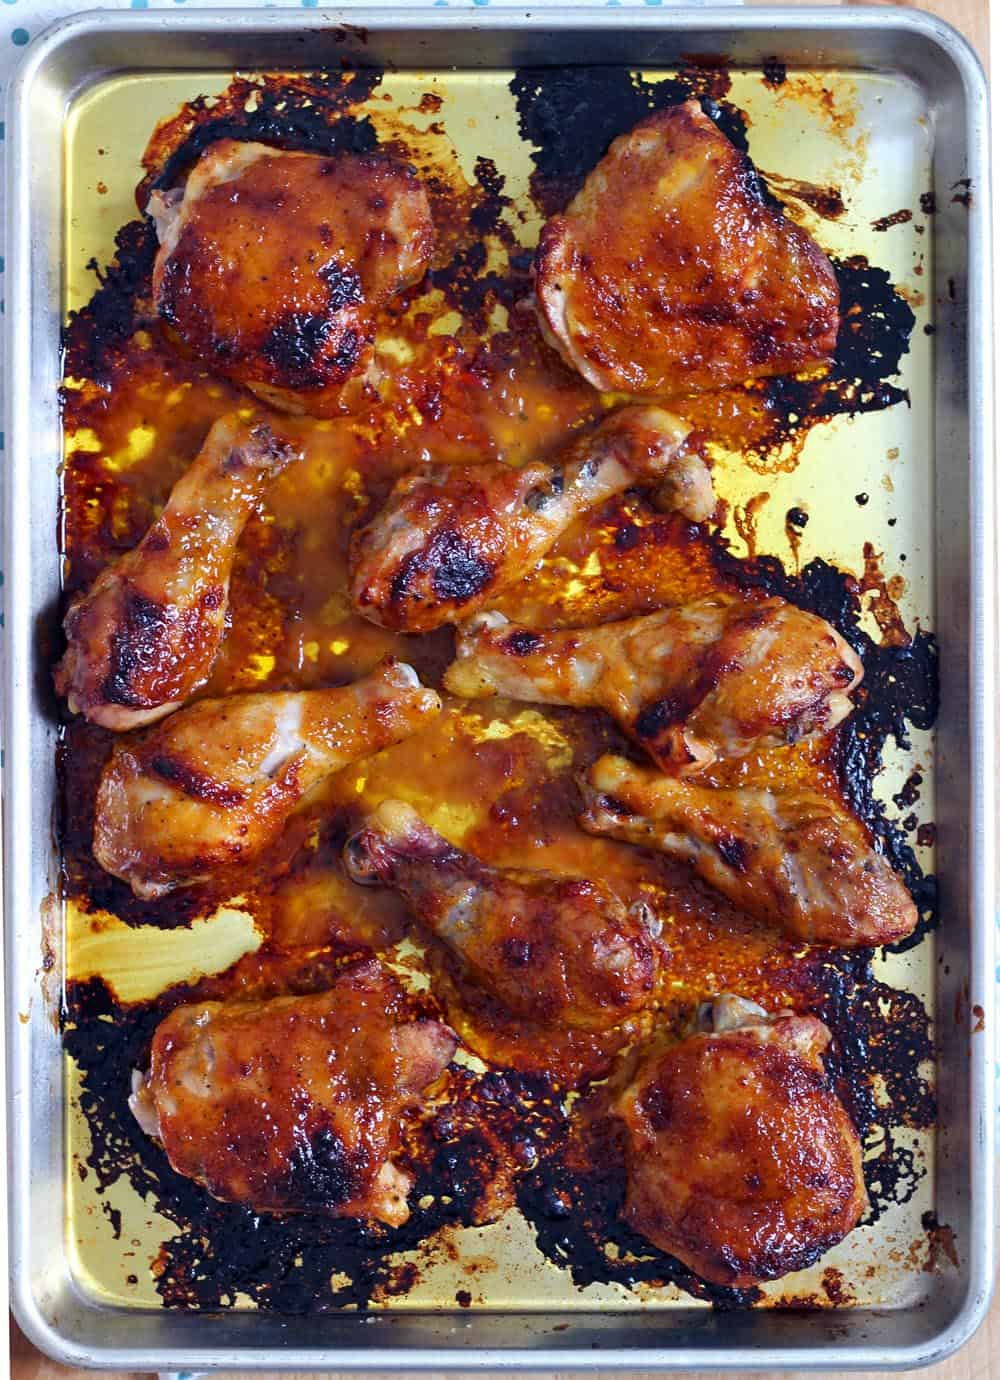 A roasting pan with bbq chicken